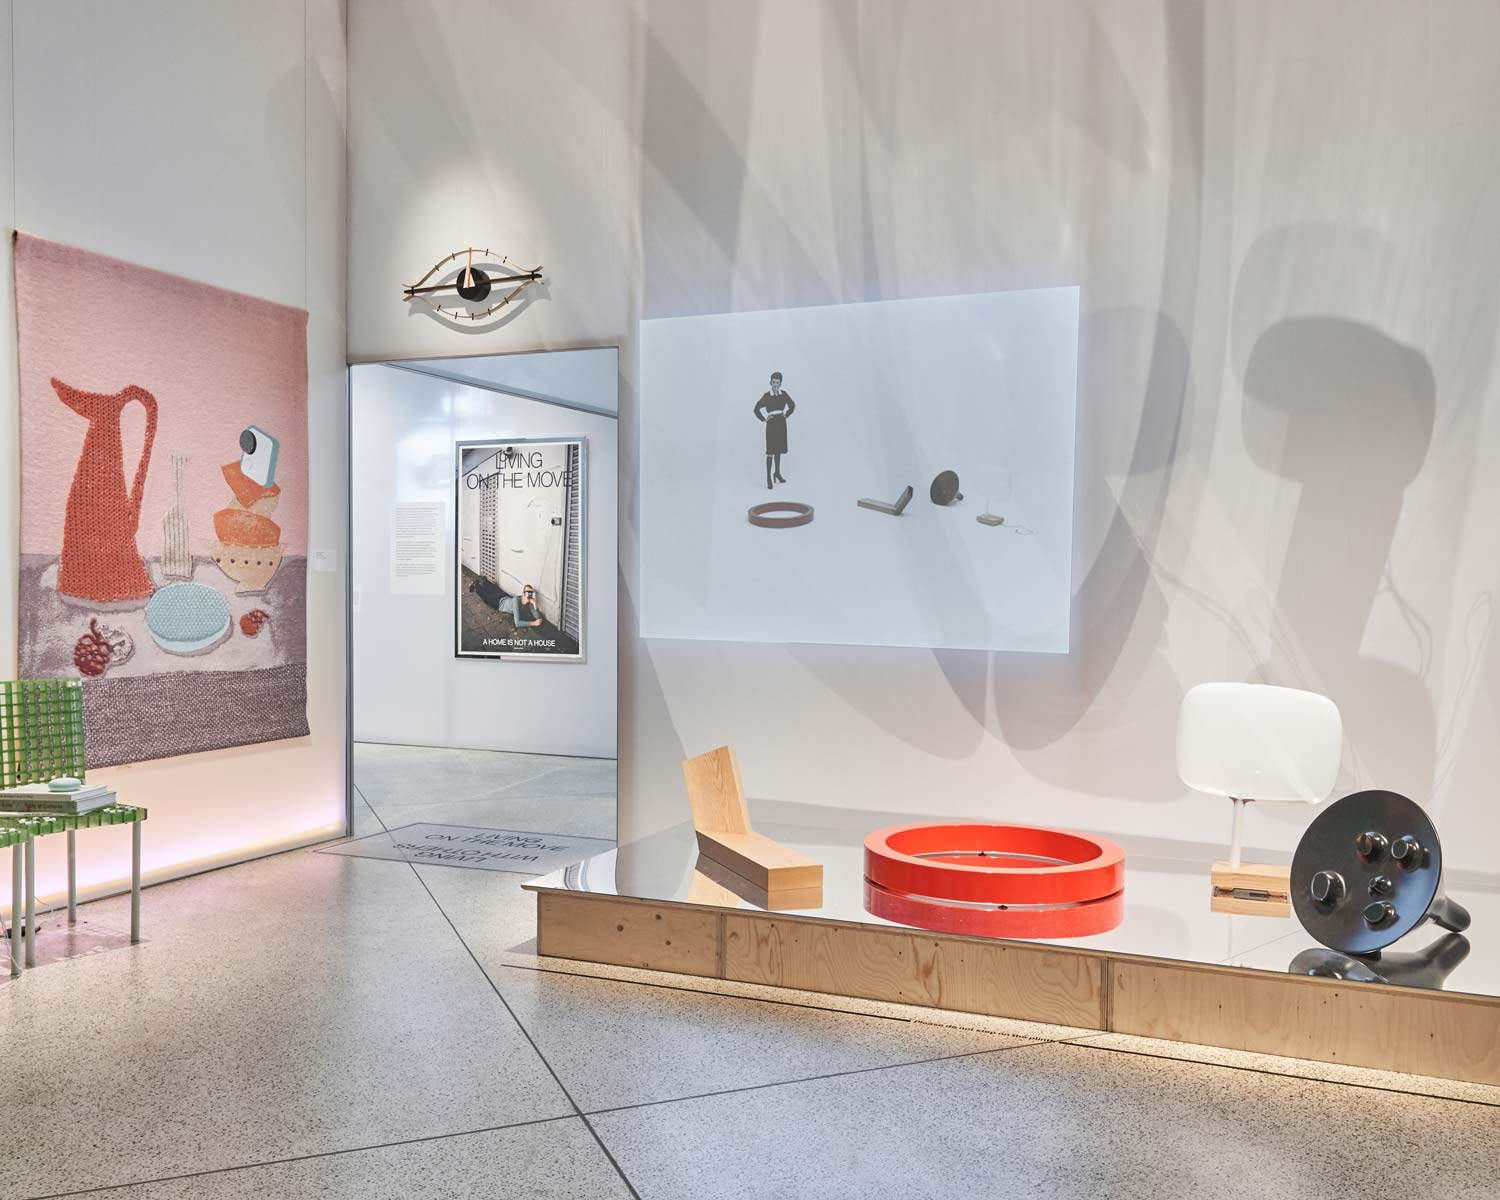 6 Modern Living Trends For 2020 As Seen At Home Futures Exhibition Italianbark